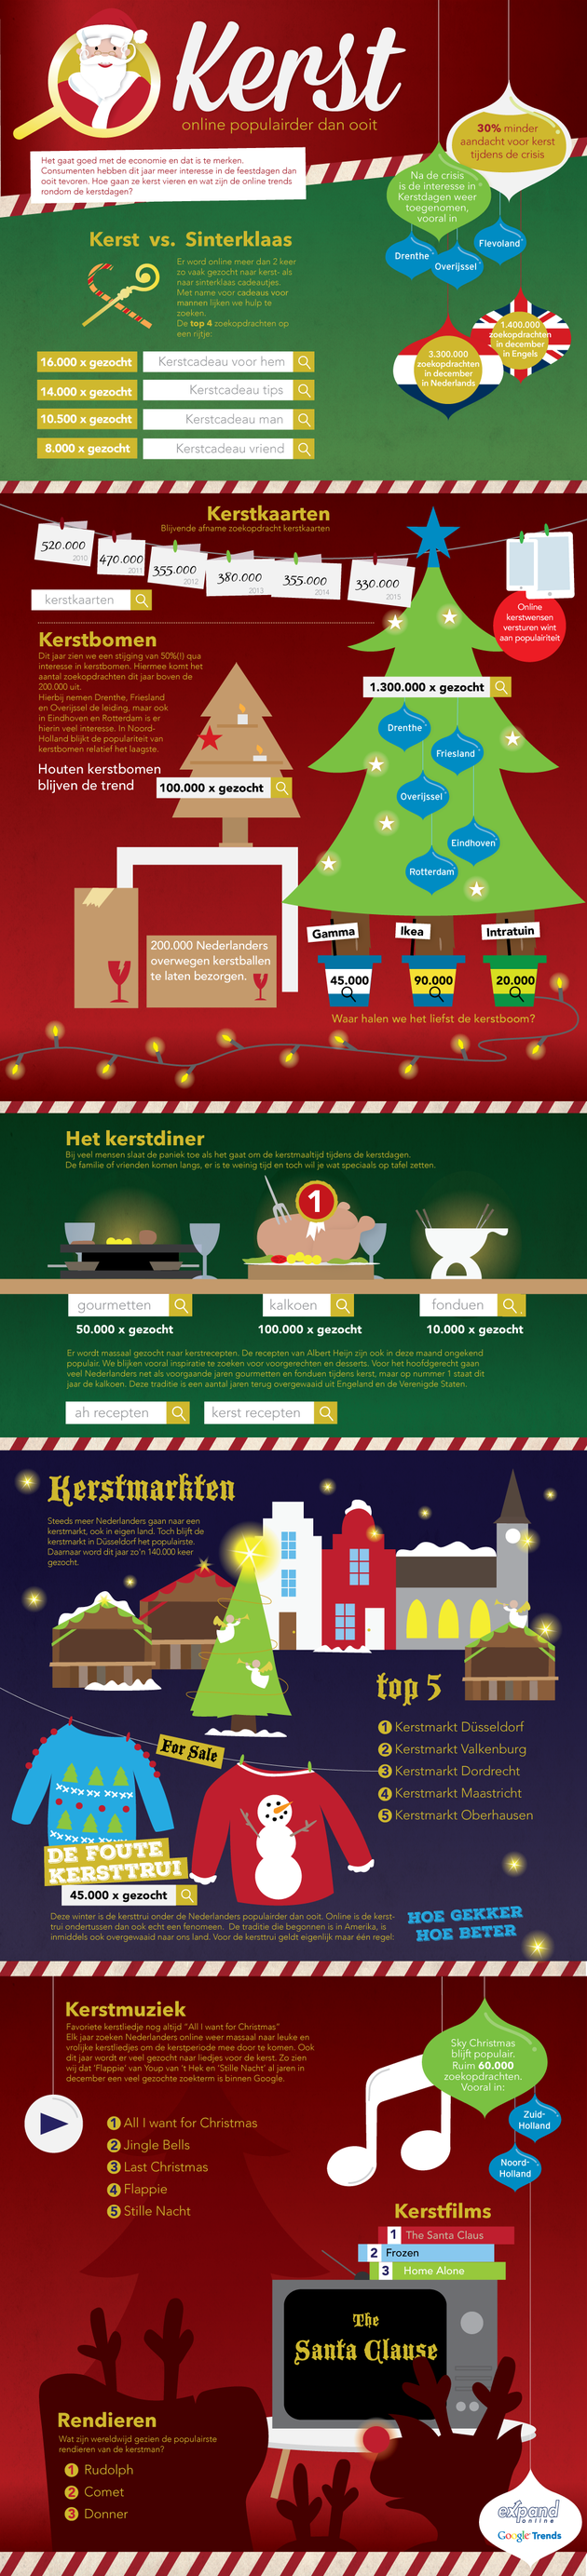 20151222 Kerst infographic